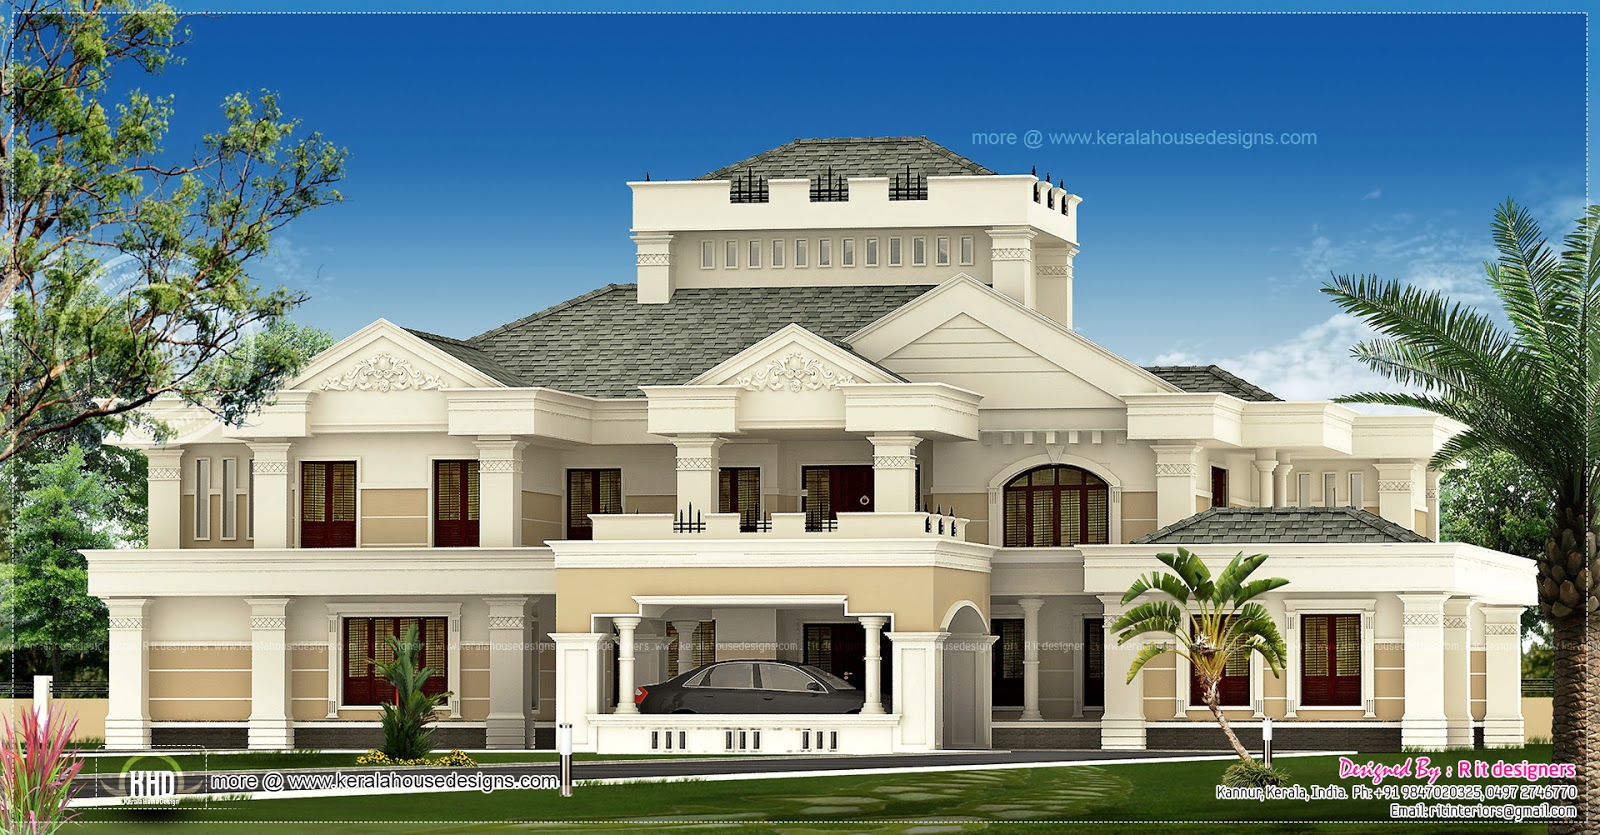 Super luxury kerala house exterior house design plans for Kerala house images gallery